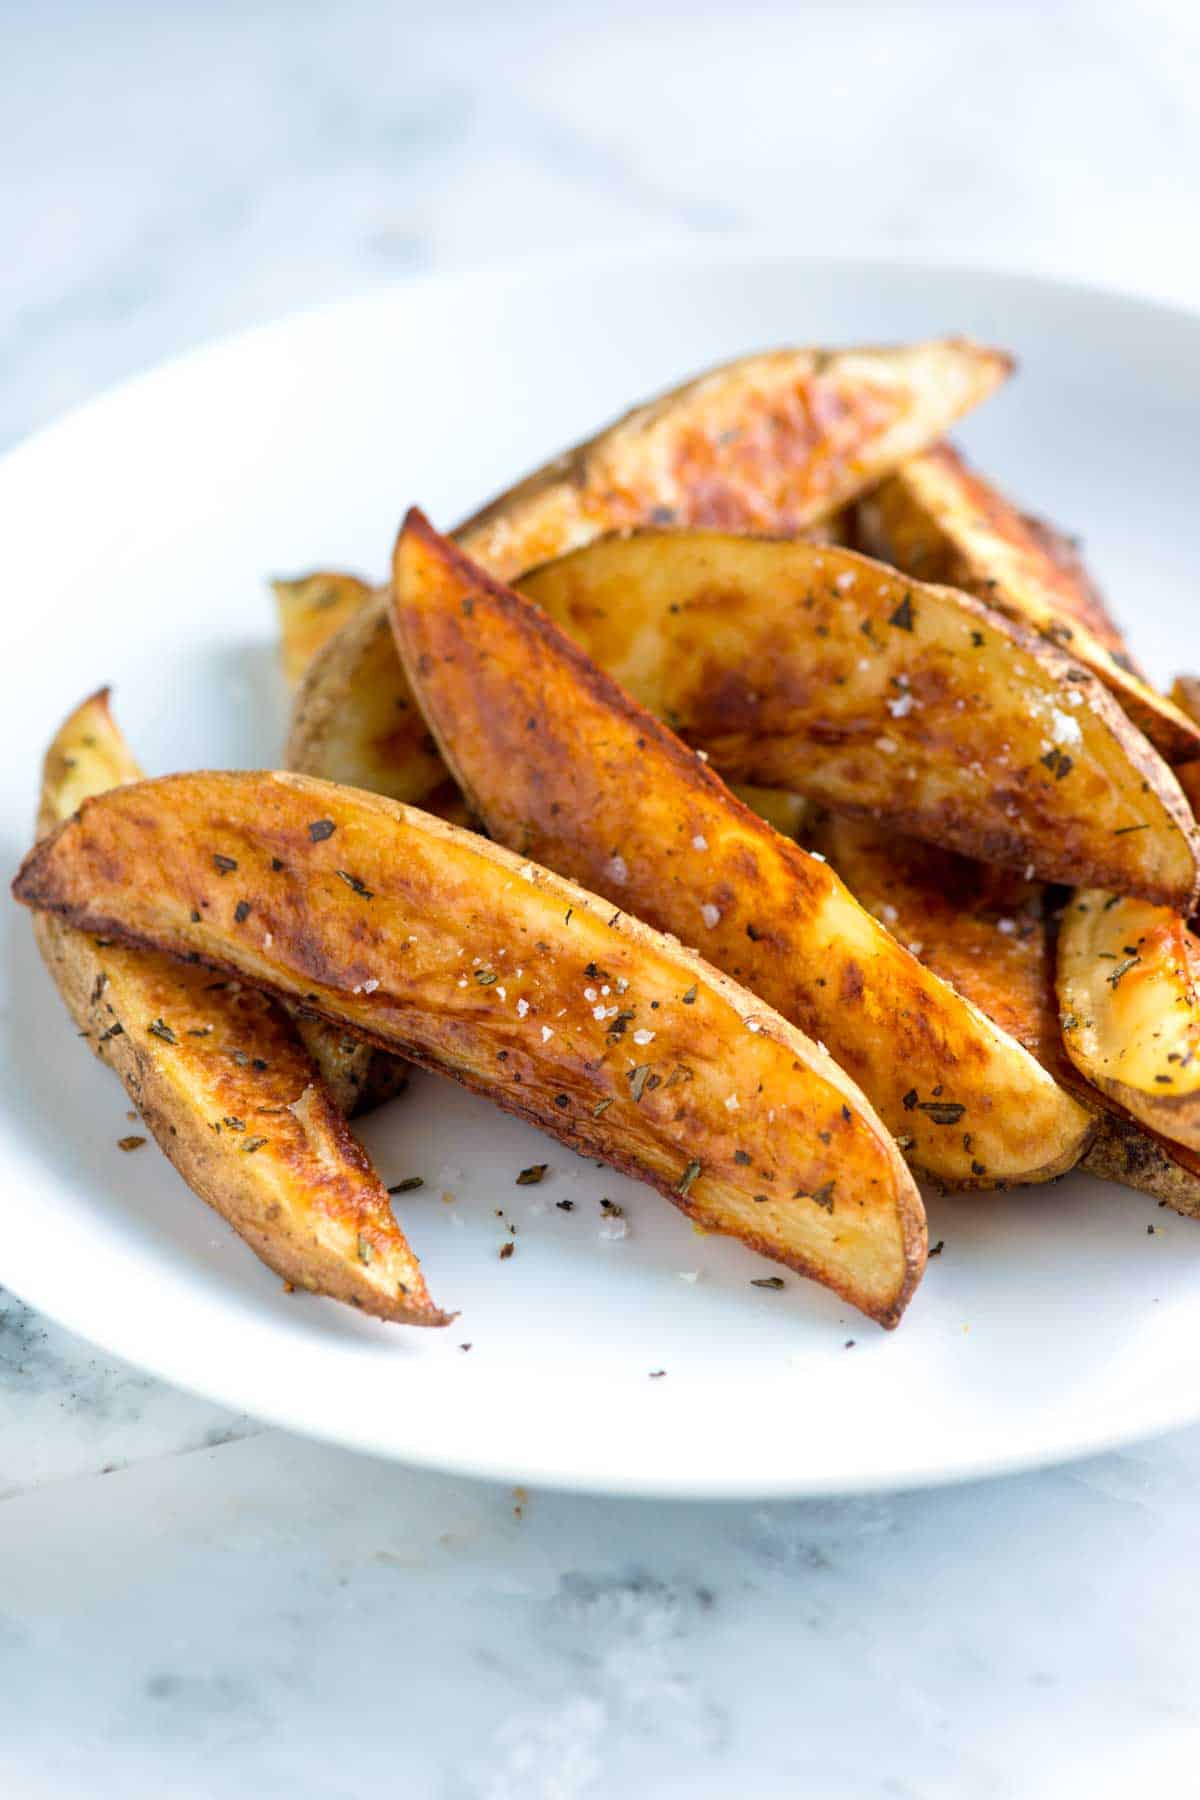 How To Make Roasted Potato Wedges So They Don't Stick